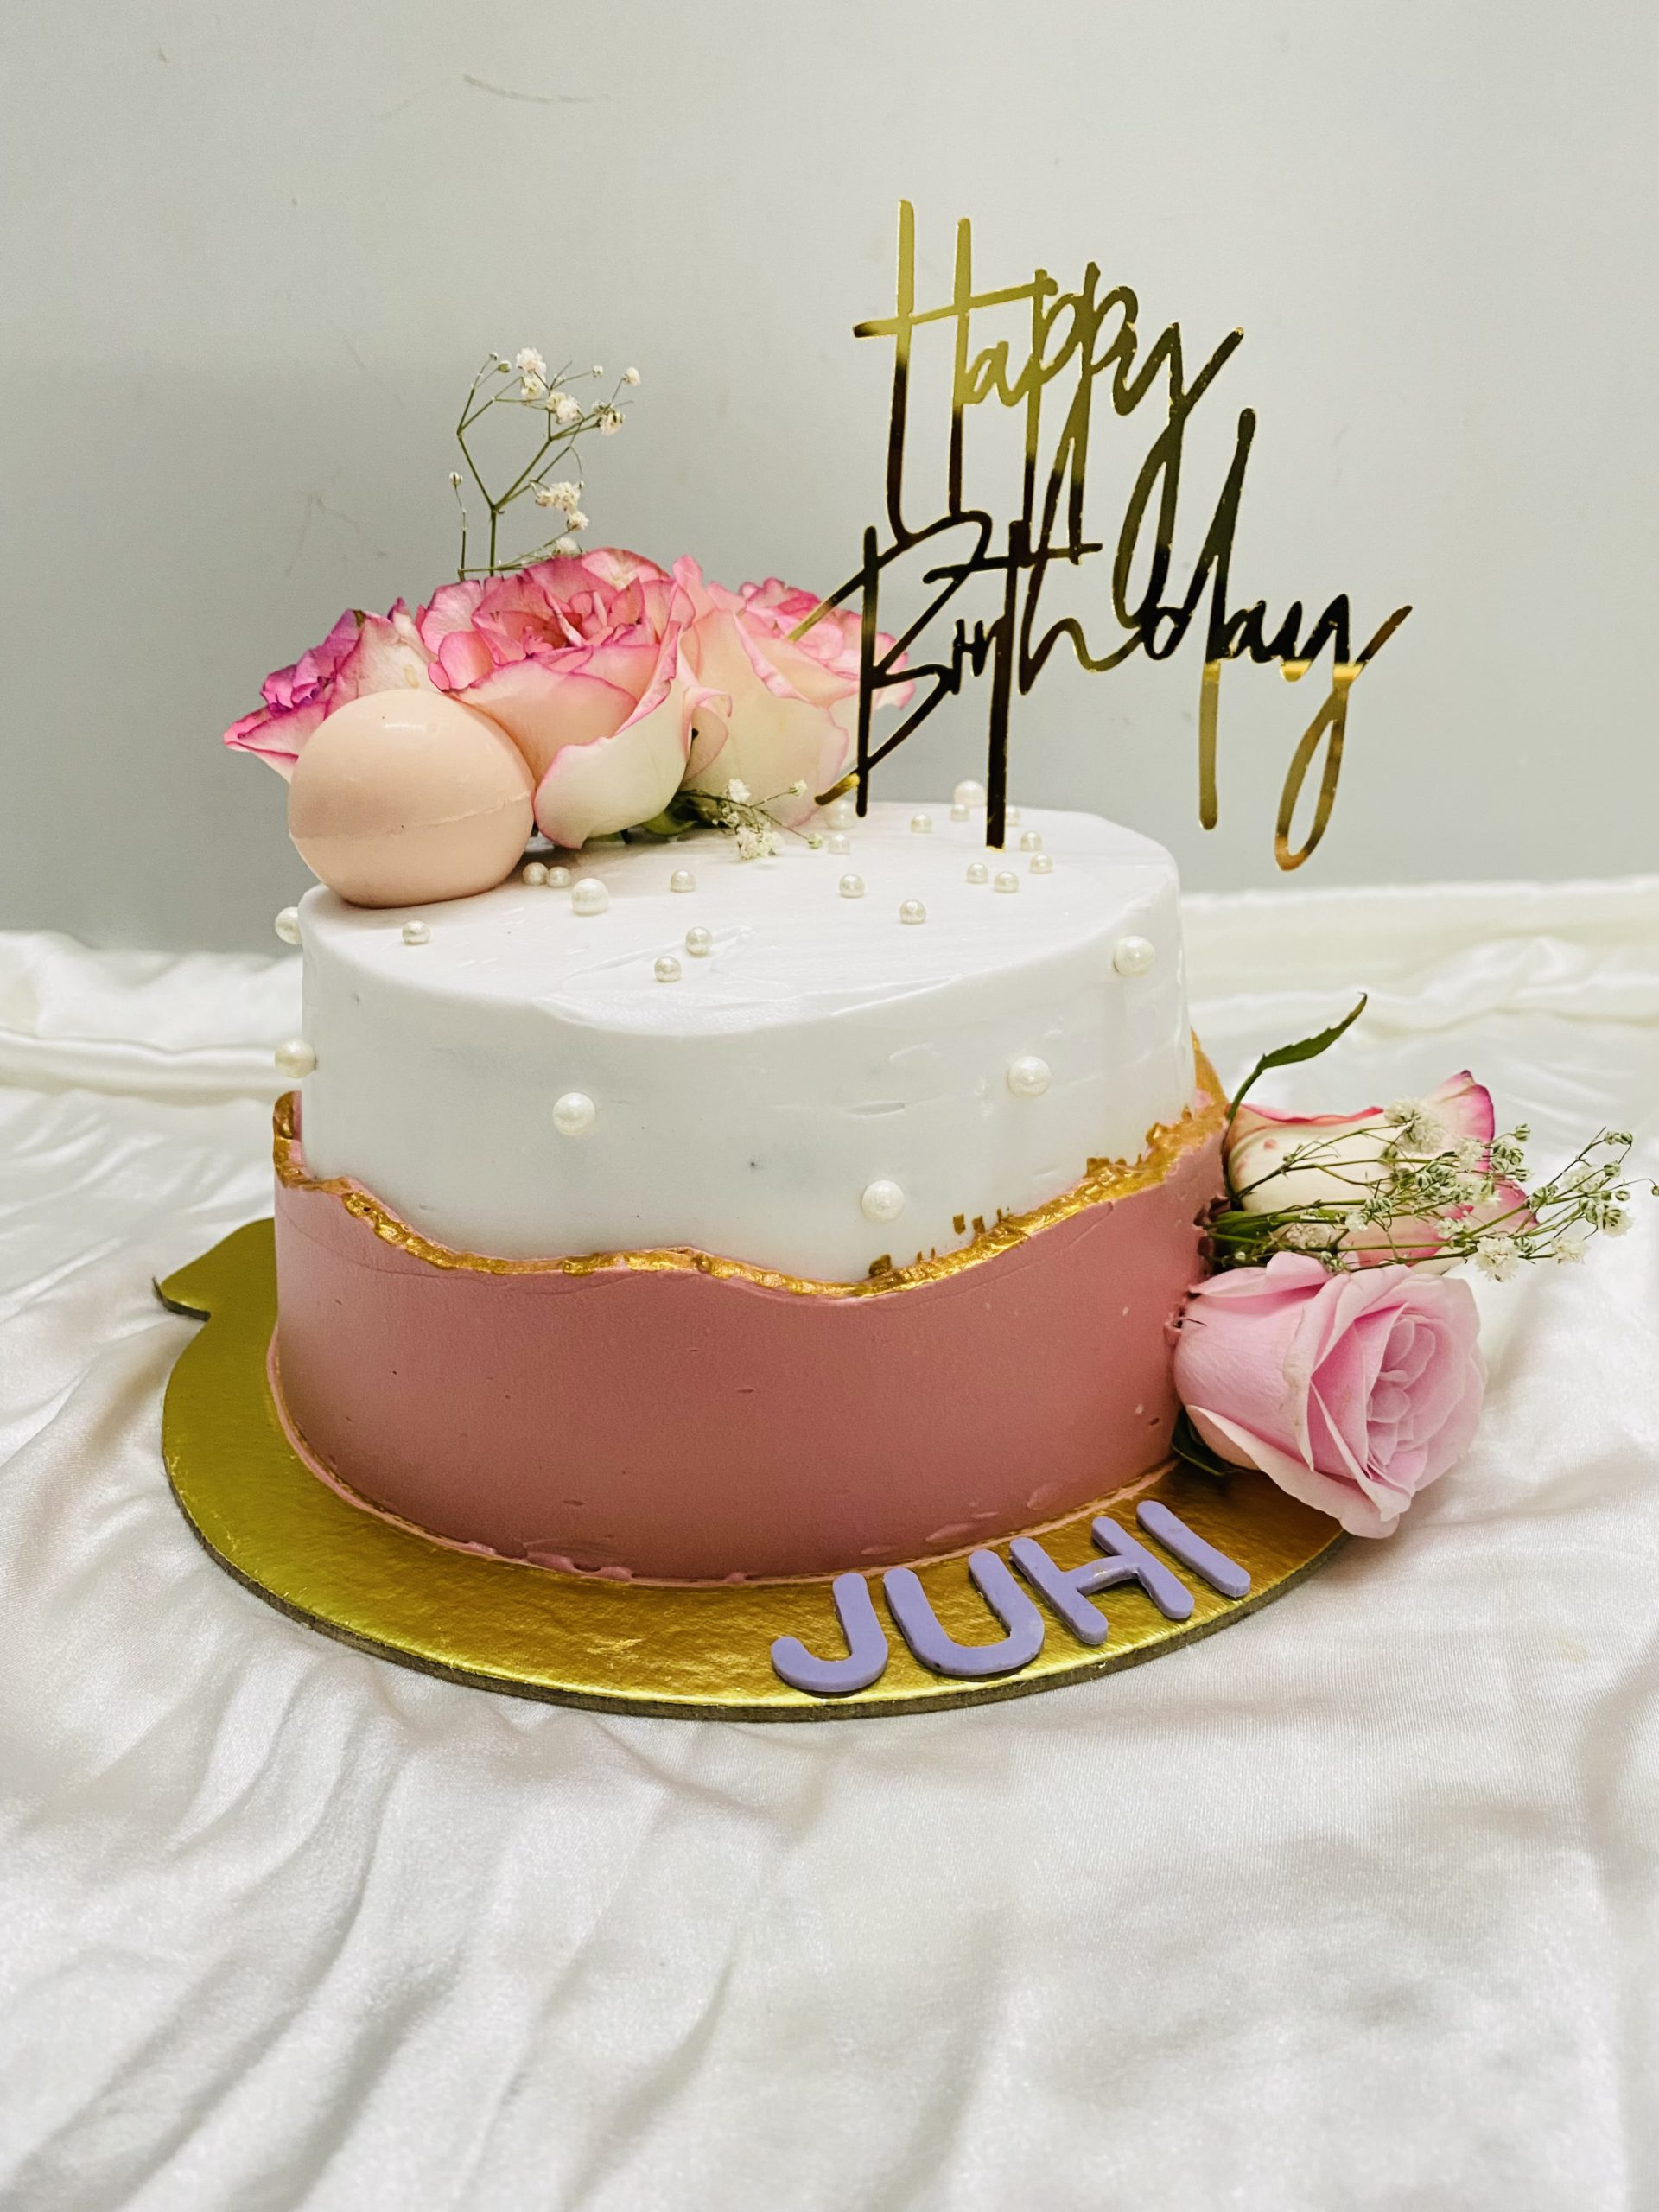 Floral cake Designs, Images, Price Near Me